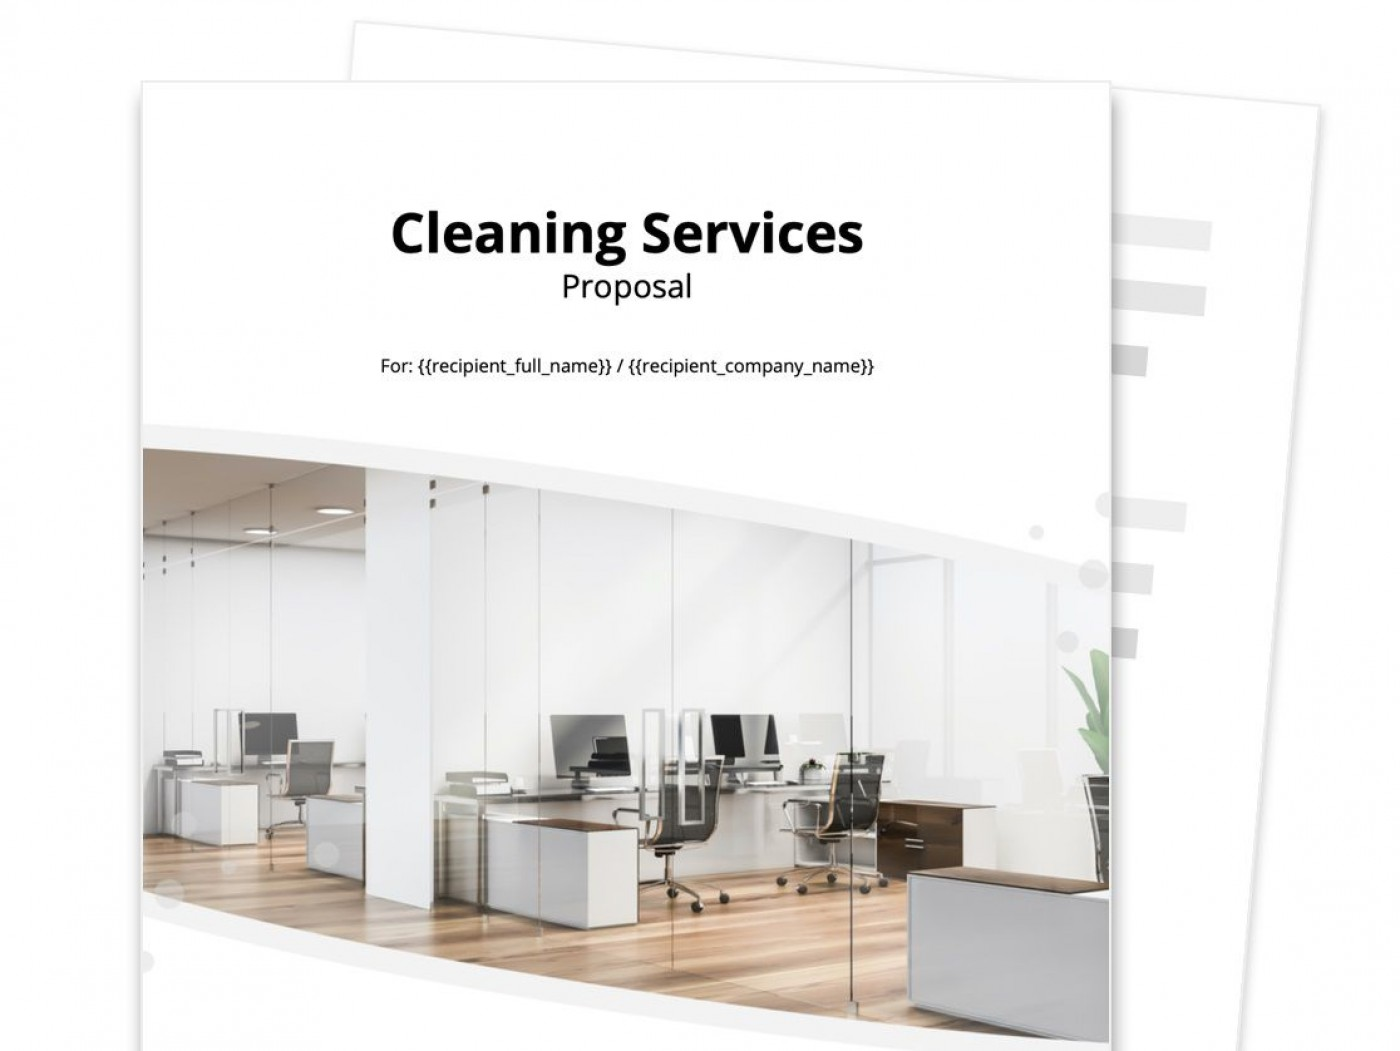 006 Stunning Free Cleaning Proposal Template Image  Office Busines Word1400